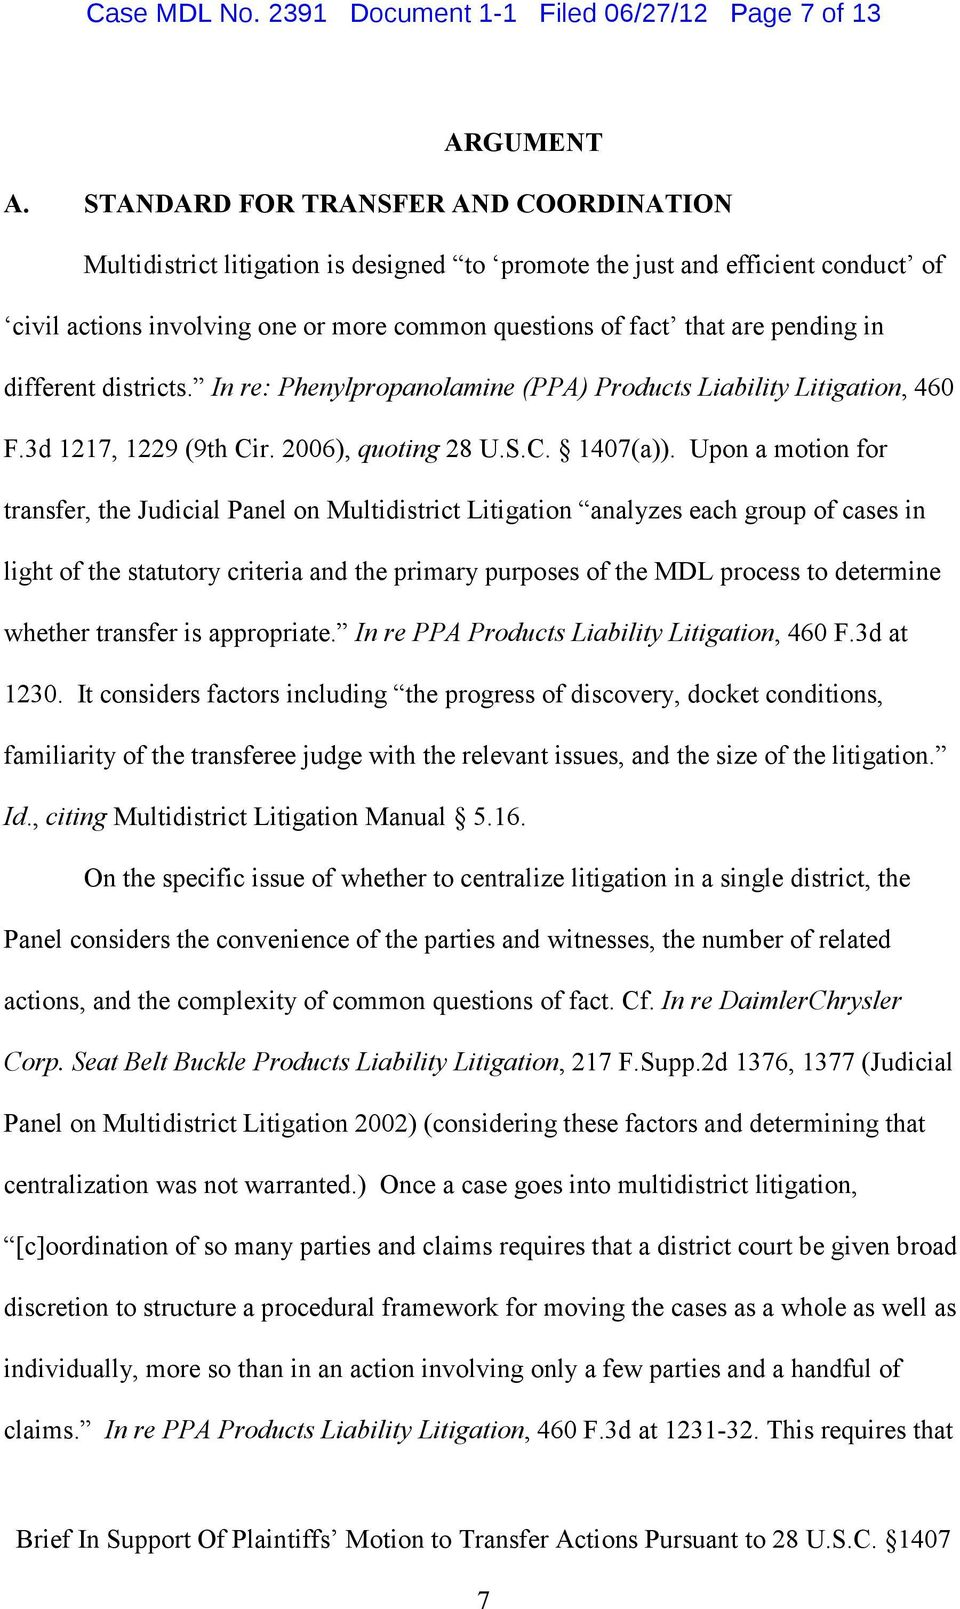 in different districts. In re: Phenylpropanolamine (PPA) Products Liability Litigation, 460 F.3d 1217, 1229 (9th Cir. 2006), quoting 28 U.S.C. 1407(a)).